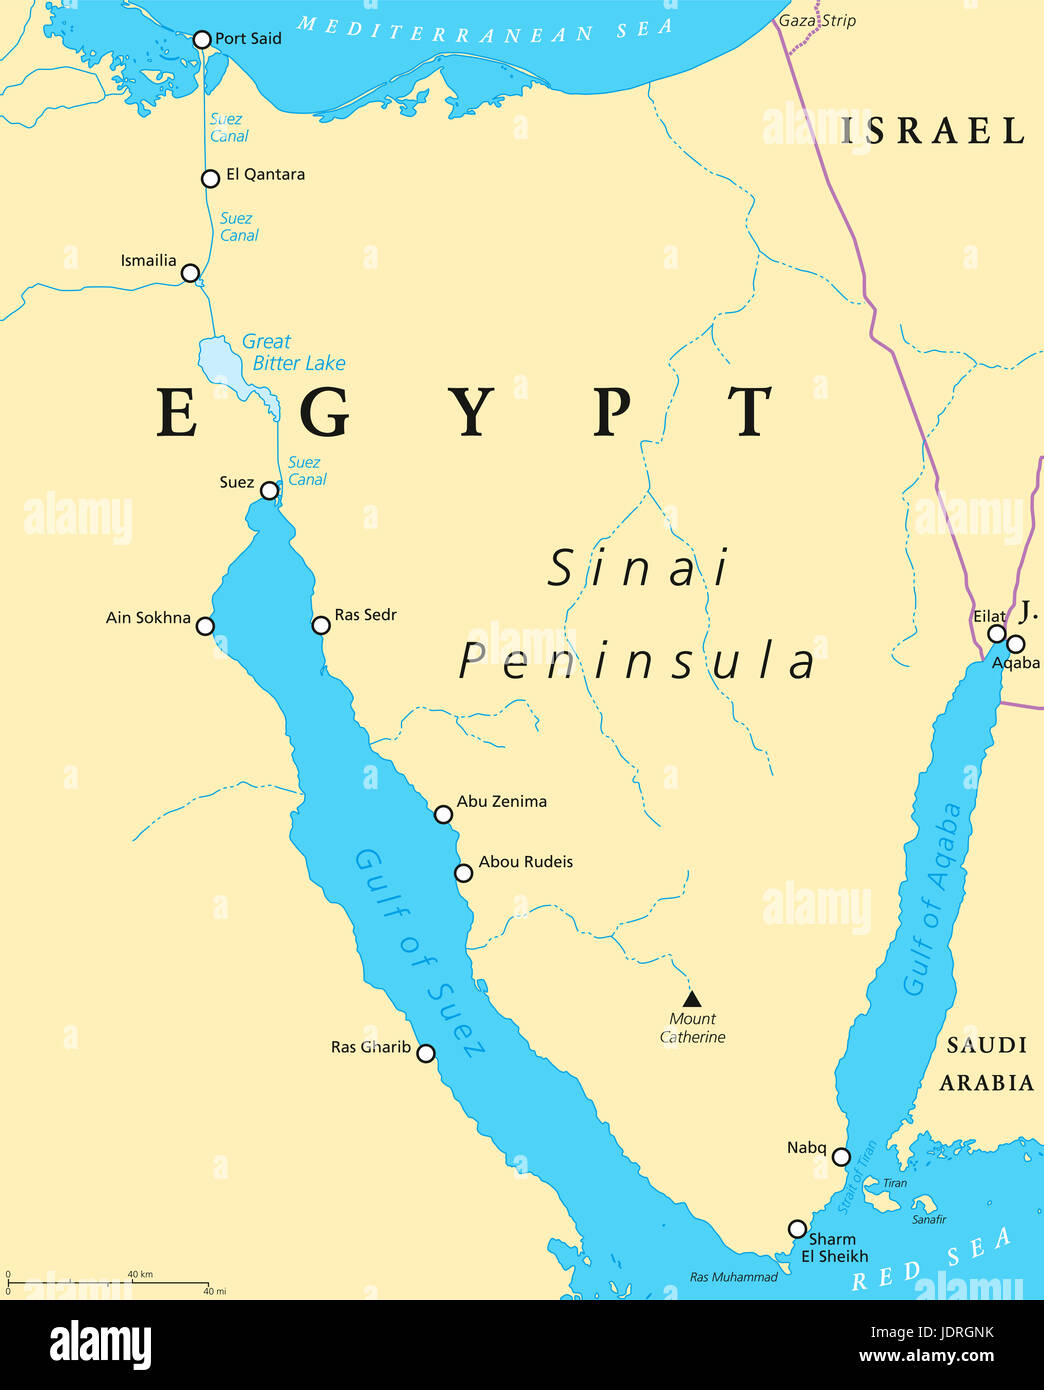 Suez Canal Map Map Of The Suez Canal Stock Photos & Map Of The Suez Canal Stock  Suez Canal Map